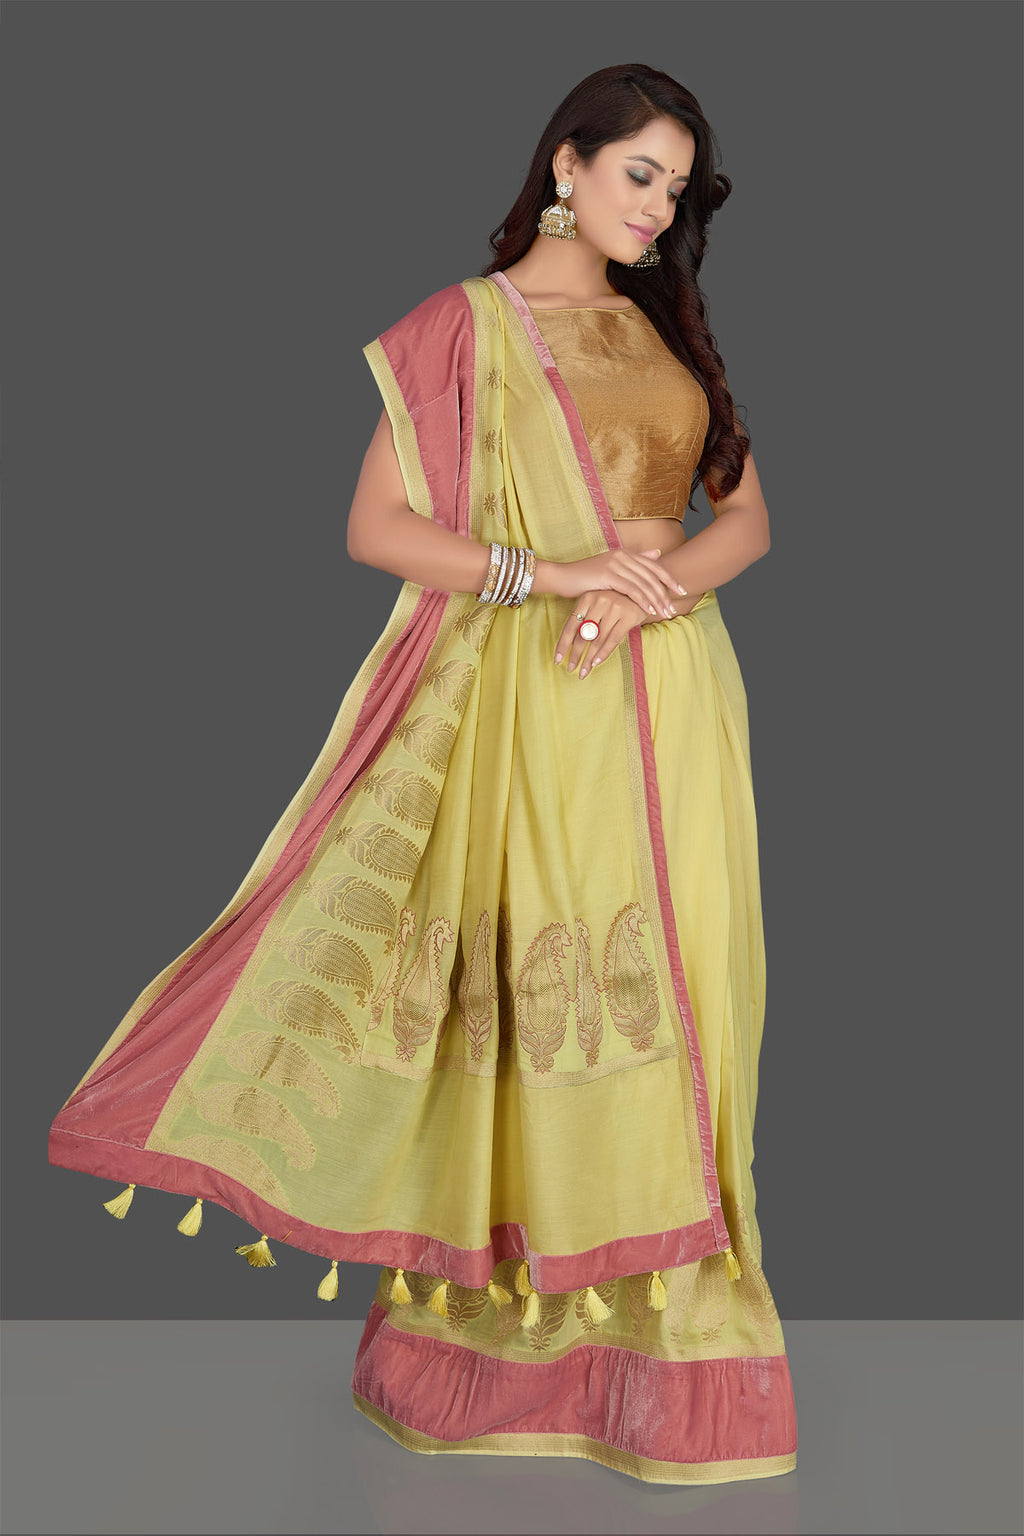 Buy charming yellow muga Banarsi sari online in USA with pink velvet border and velvet blouse. Radiate elegance with designer sarees with blouse, Banarasi muga sarees from Pure Elegance Indian fashion boutique in USA. We bring a especially curated collection of ethnic sarees for Indian women in USA under one roof!-full view